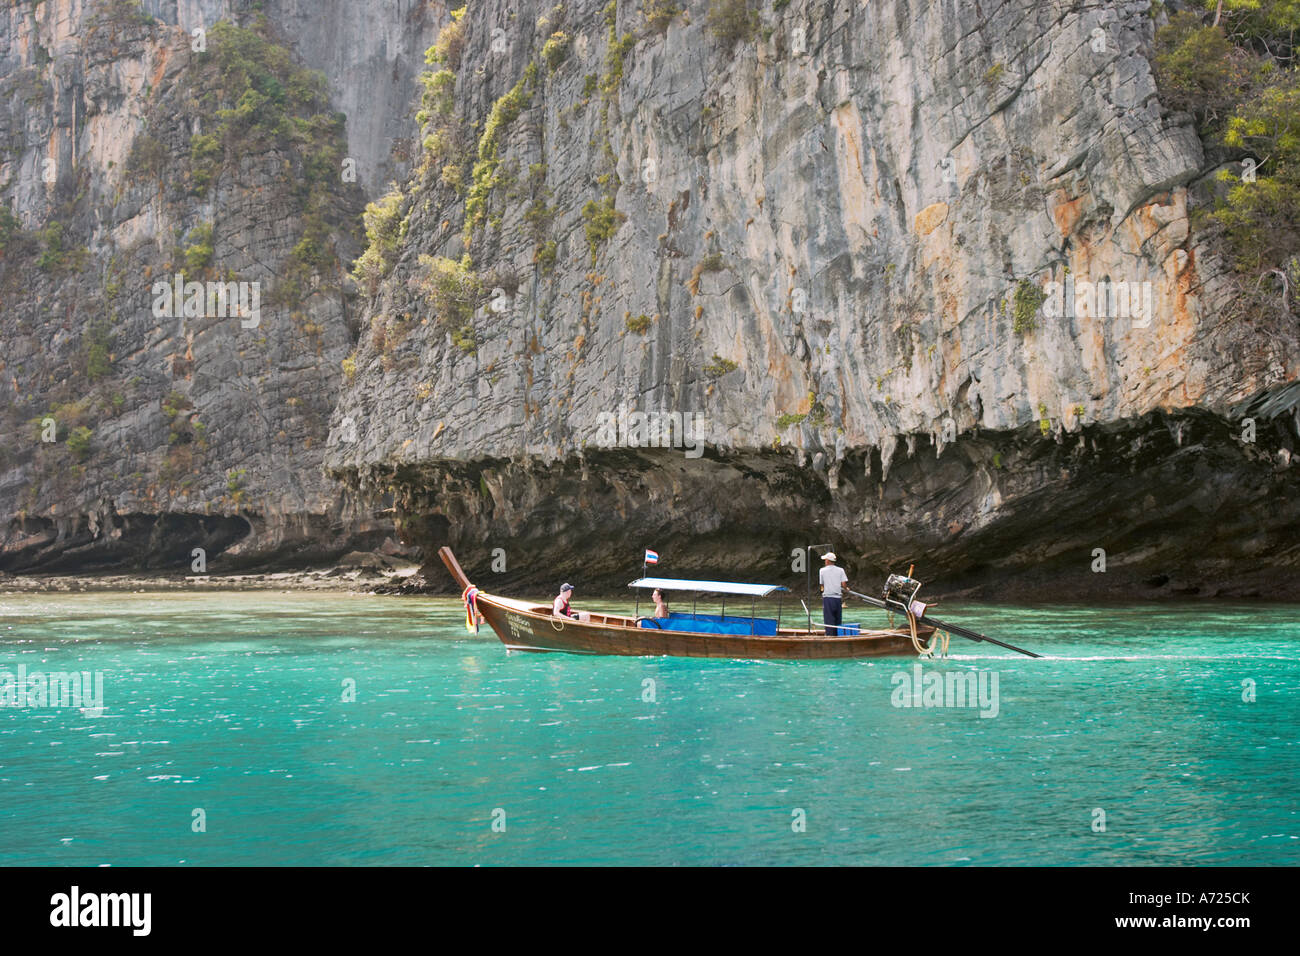 Cliffs of Phi Phi Ley island. Thailand. - Stock Image